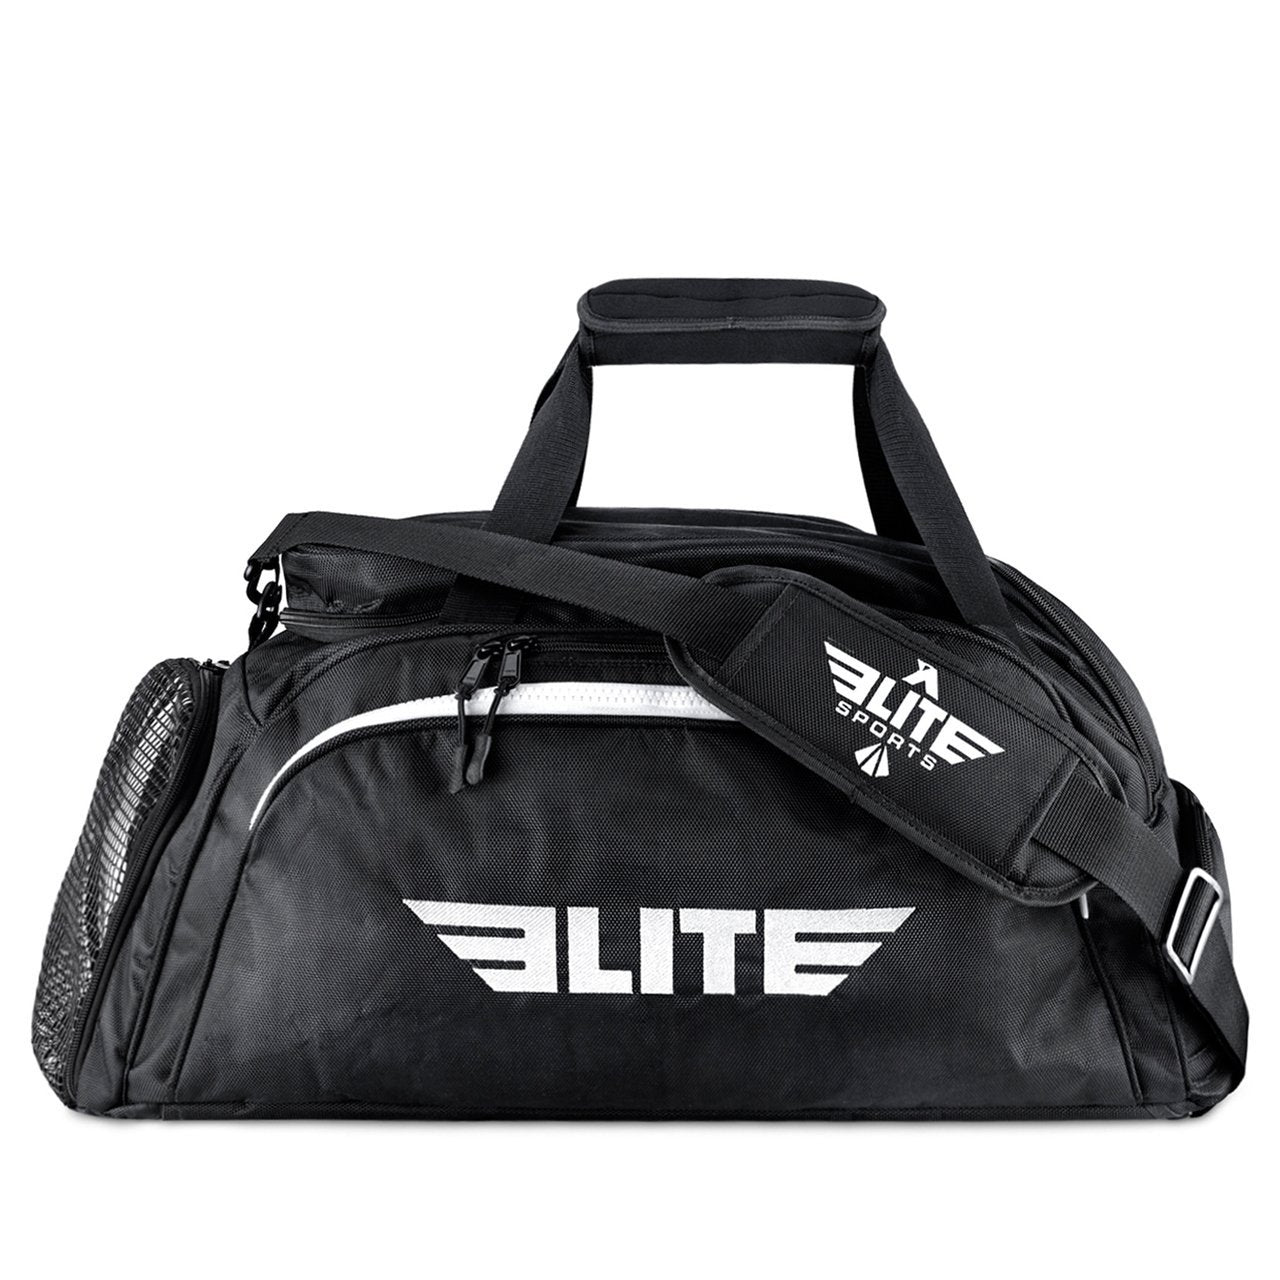 Load image into Gallery viewer, Elite Sports Warrior Series Black Large Duffel Crossfit Gear Gym Bag & Backpack